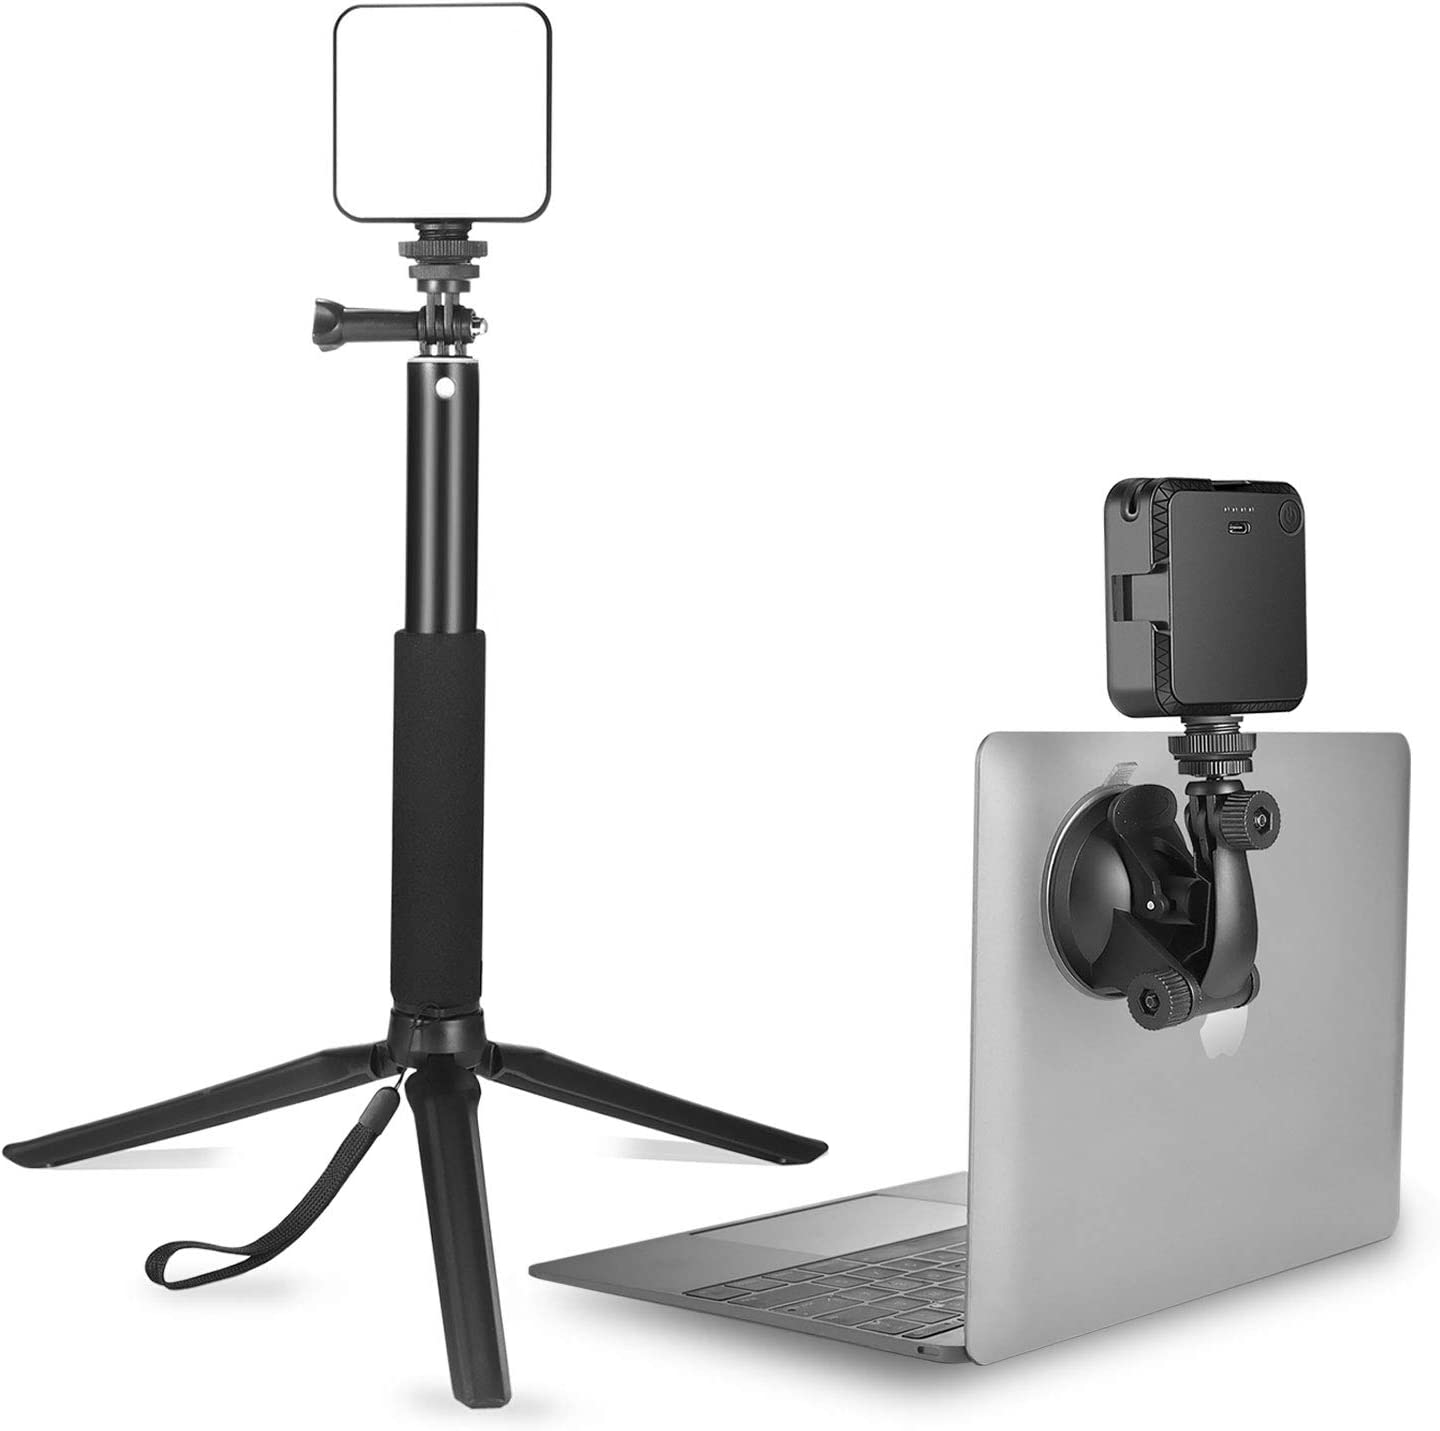 Light for Video Conferencing | Video Conference Lighting Kit with Stand Tripod | Cube Laptop Computer Webcam Light for Self Broadcast - Zoom Call Meeting - Microsoft Teams - Live Streaming